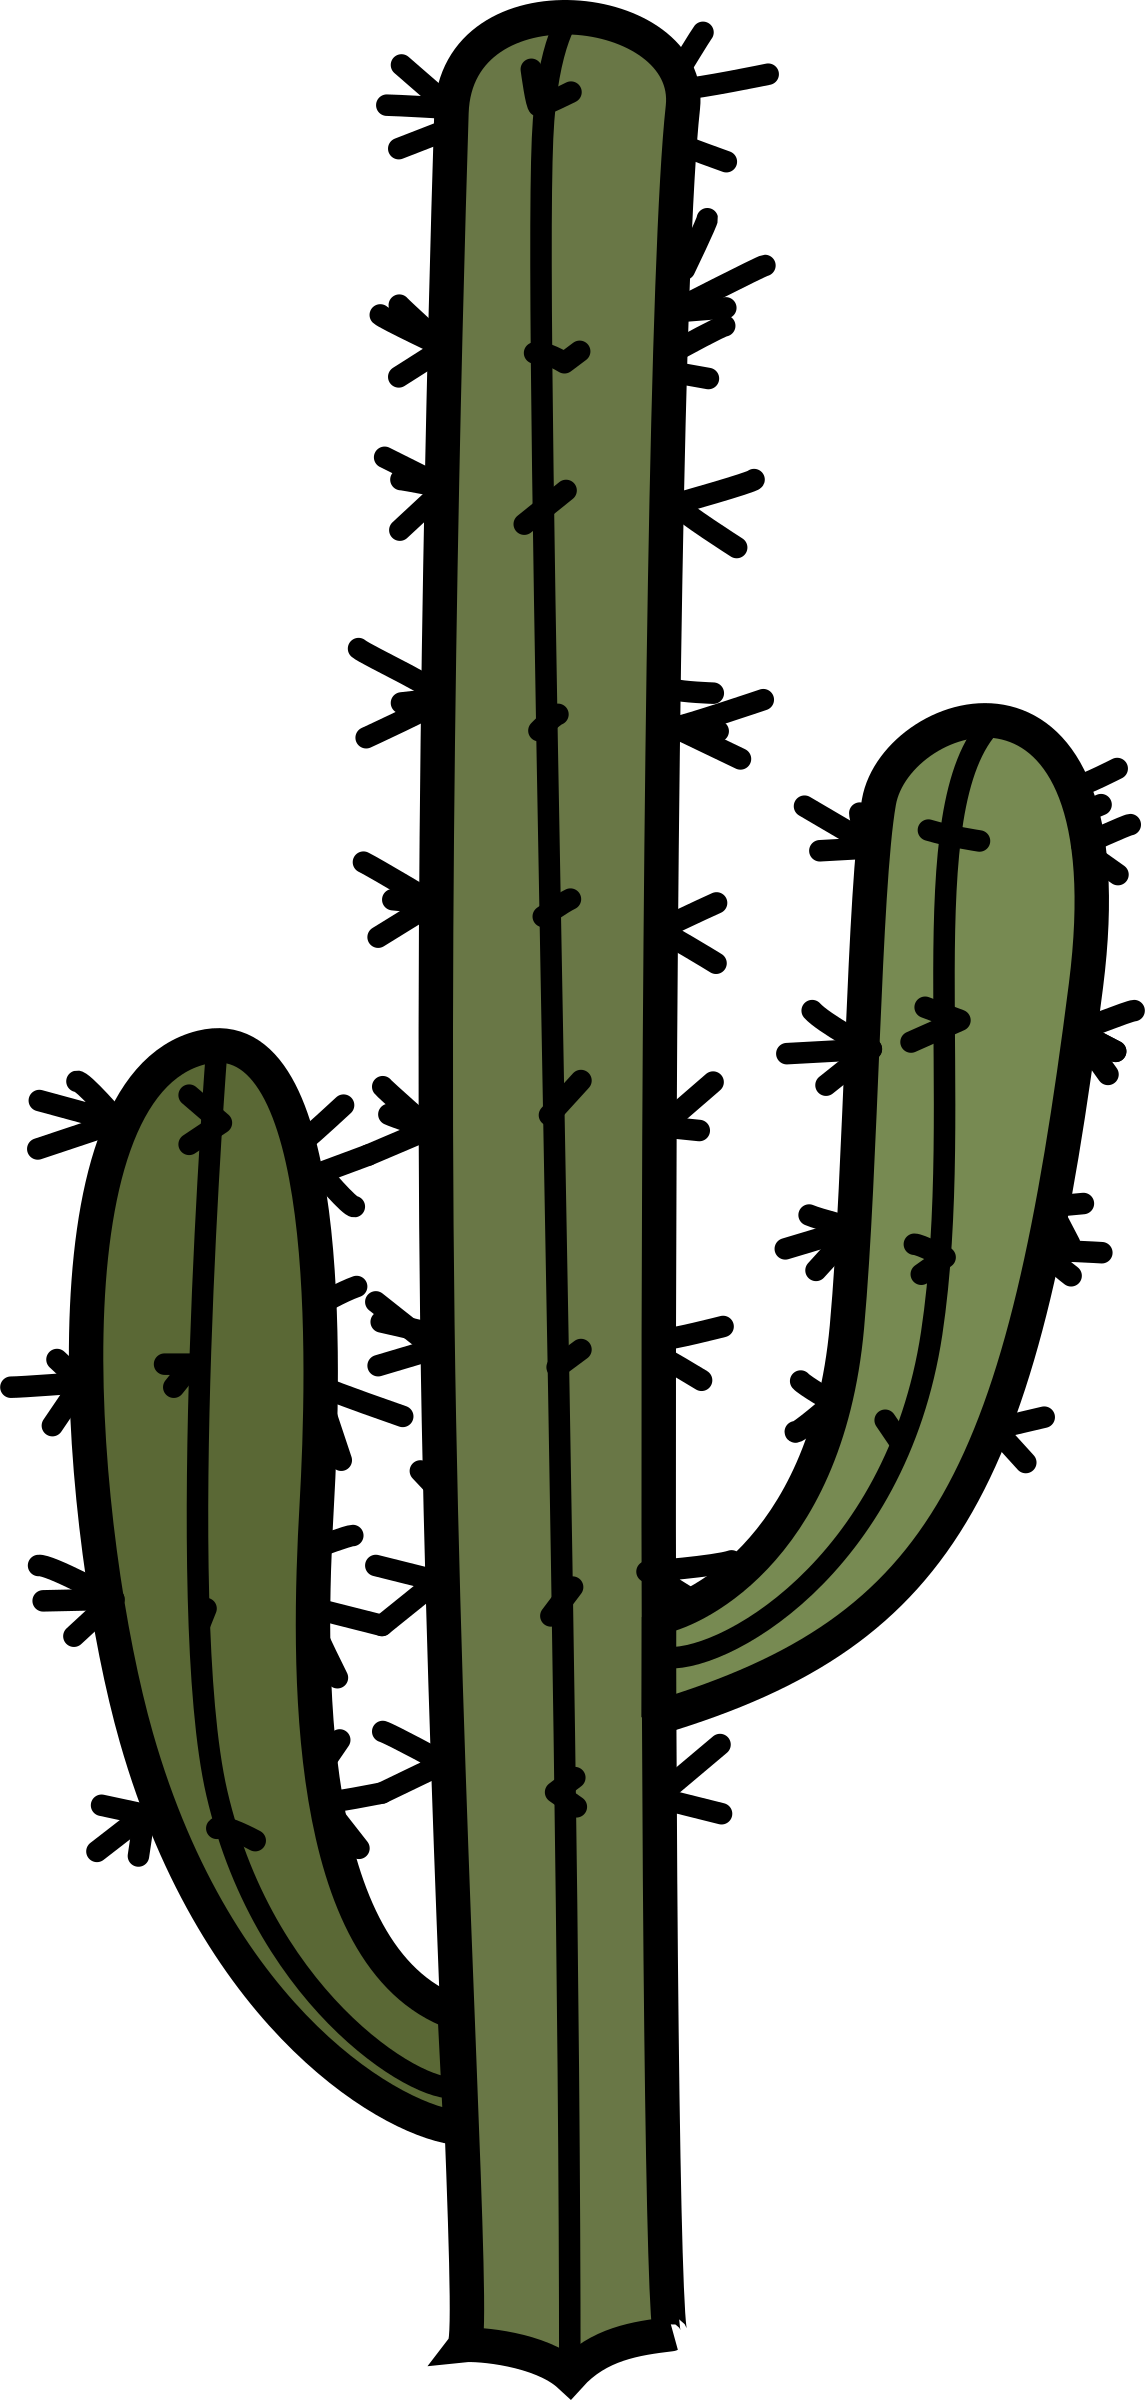 Cartoon cactus png. With arms icons free